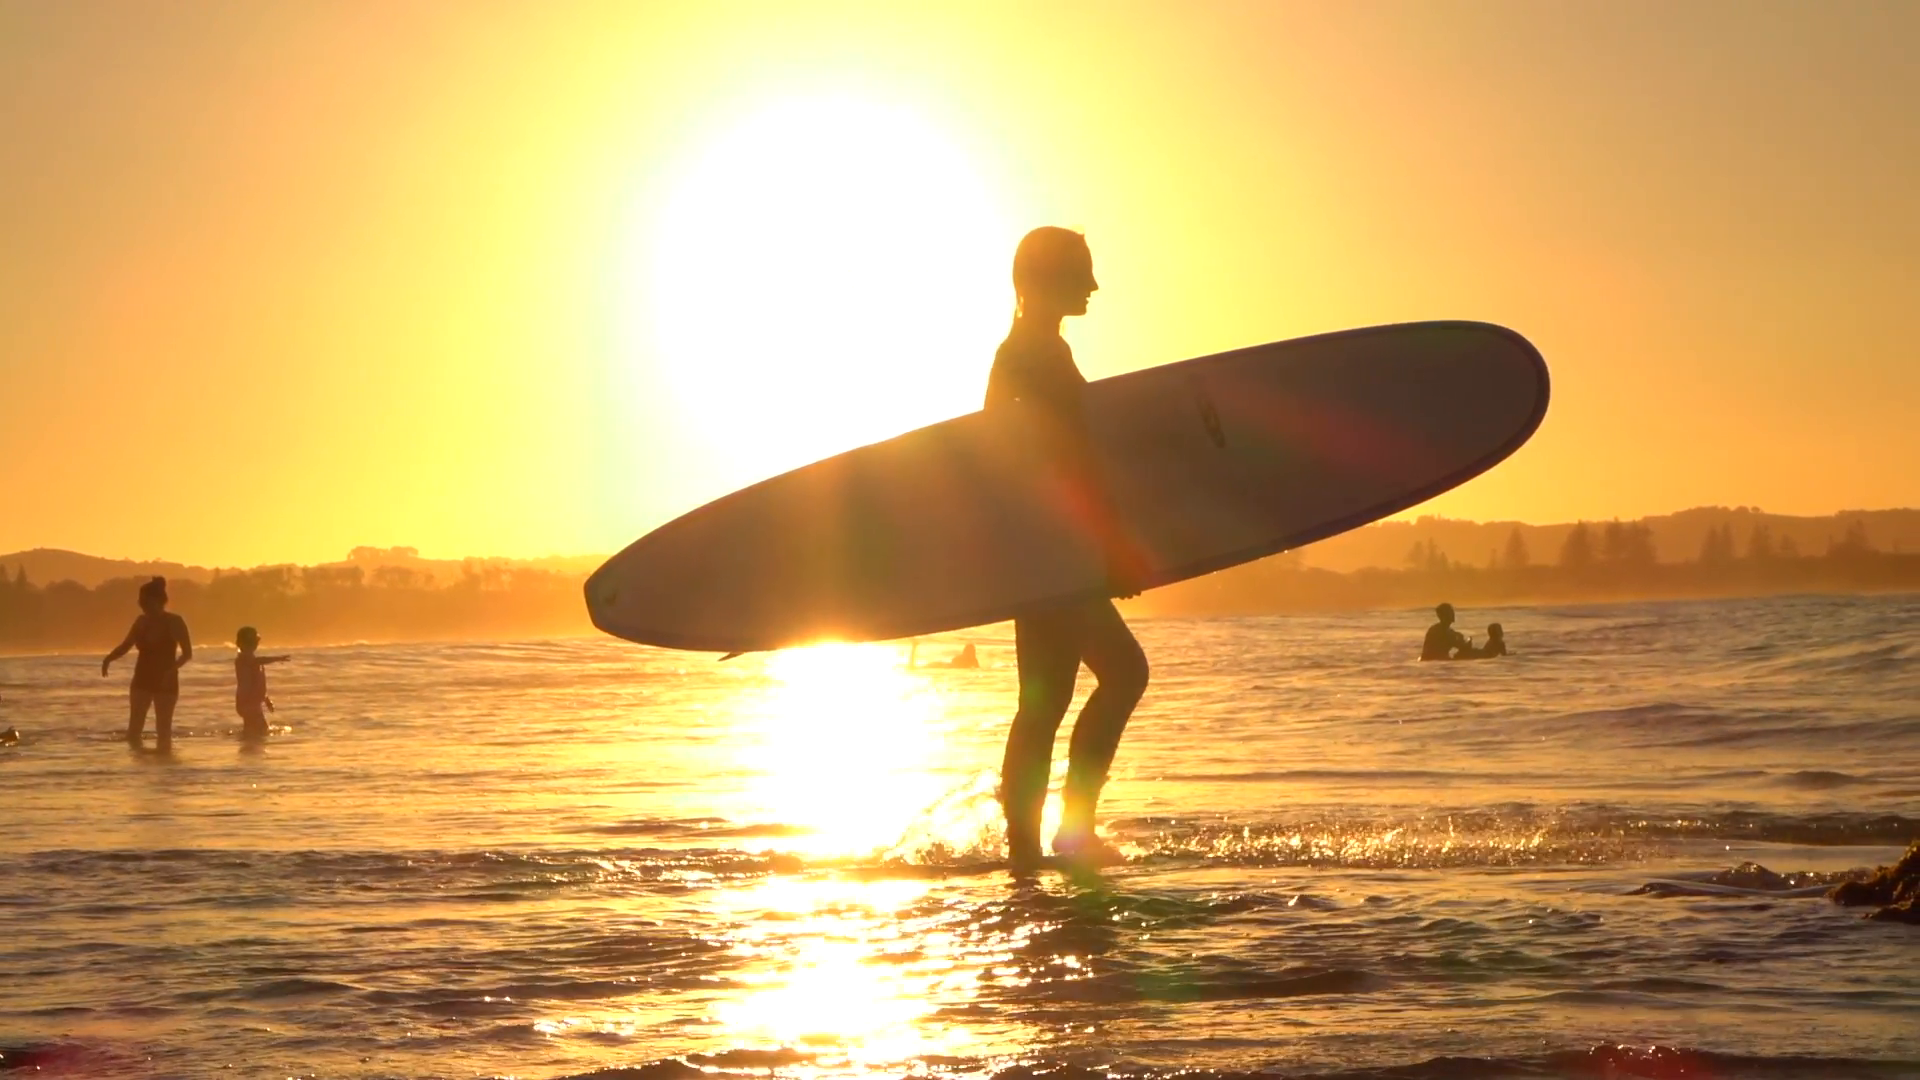 Surfer with surfboard photo